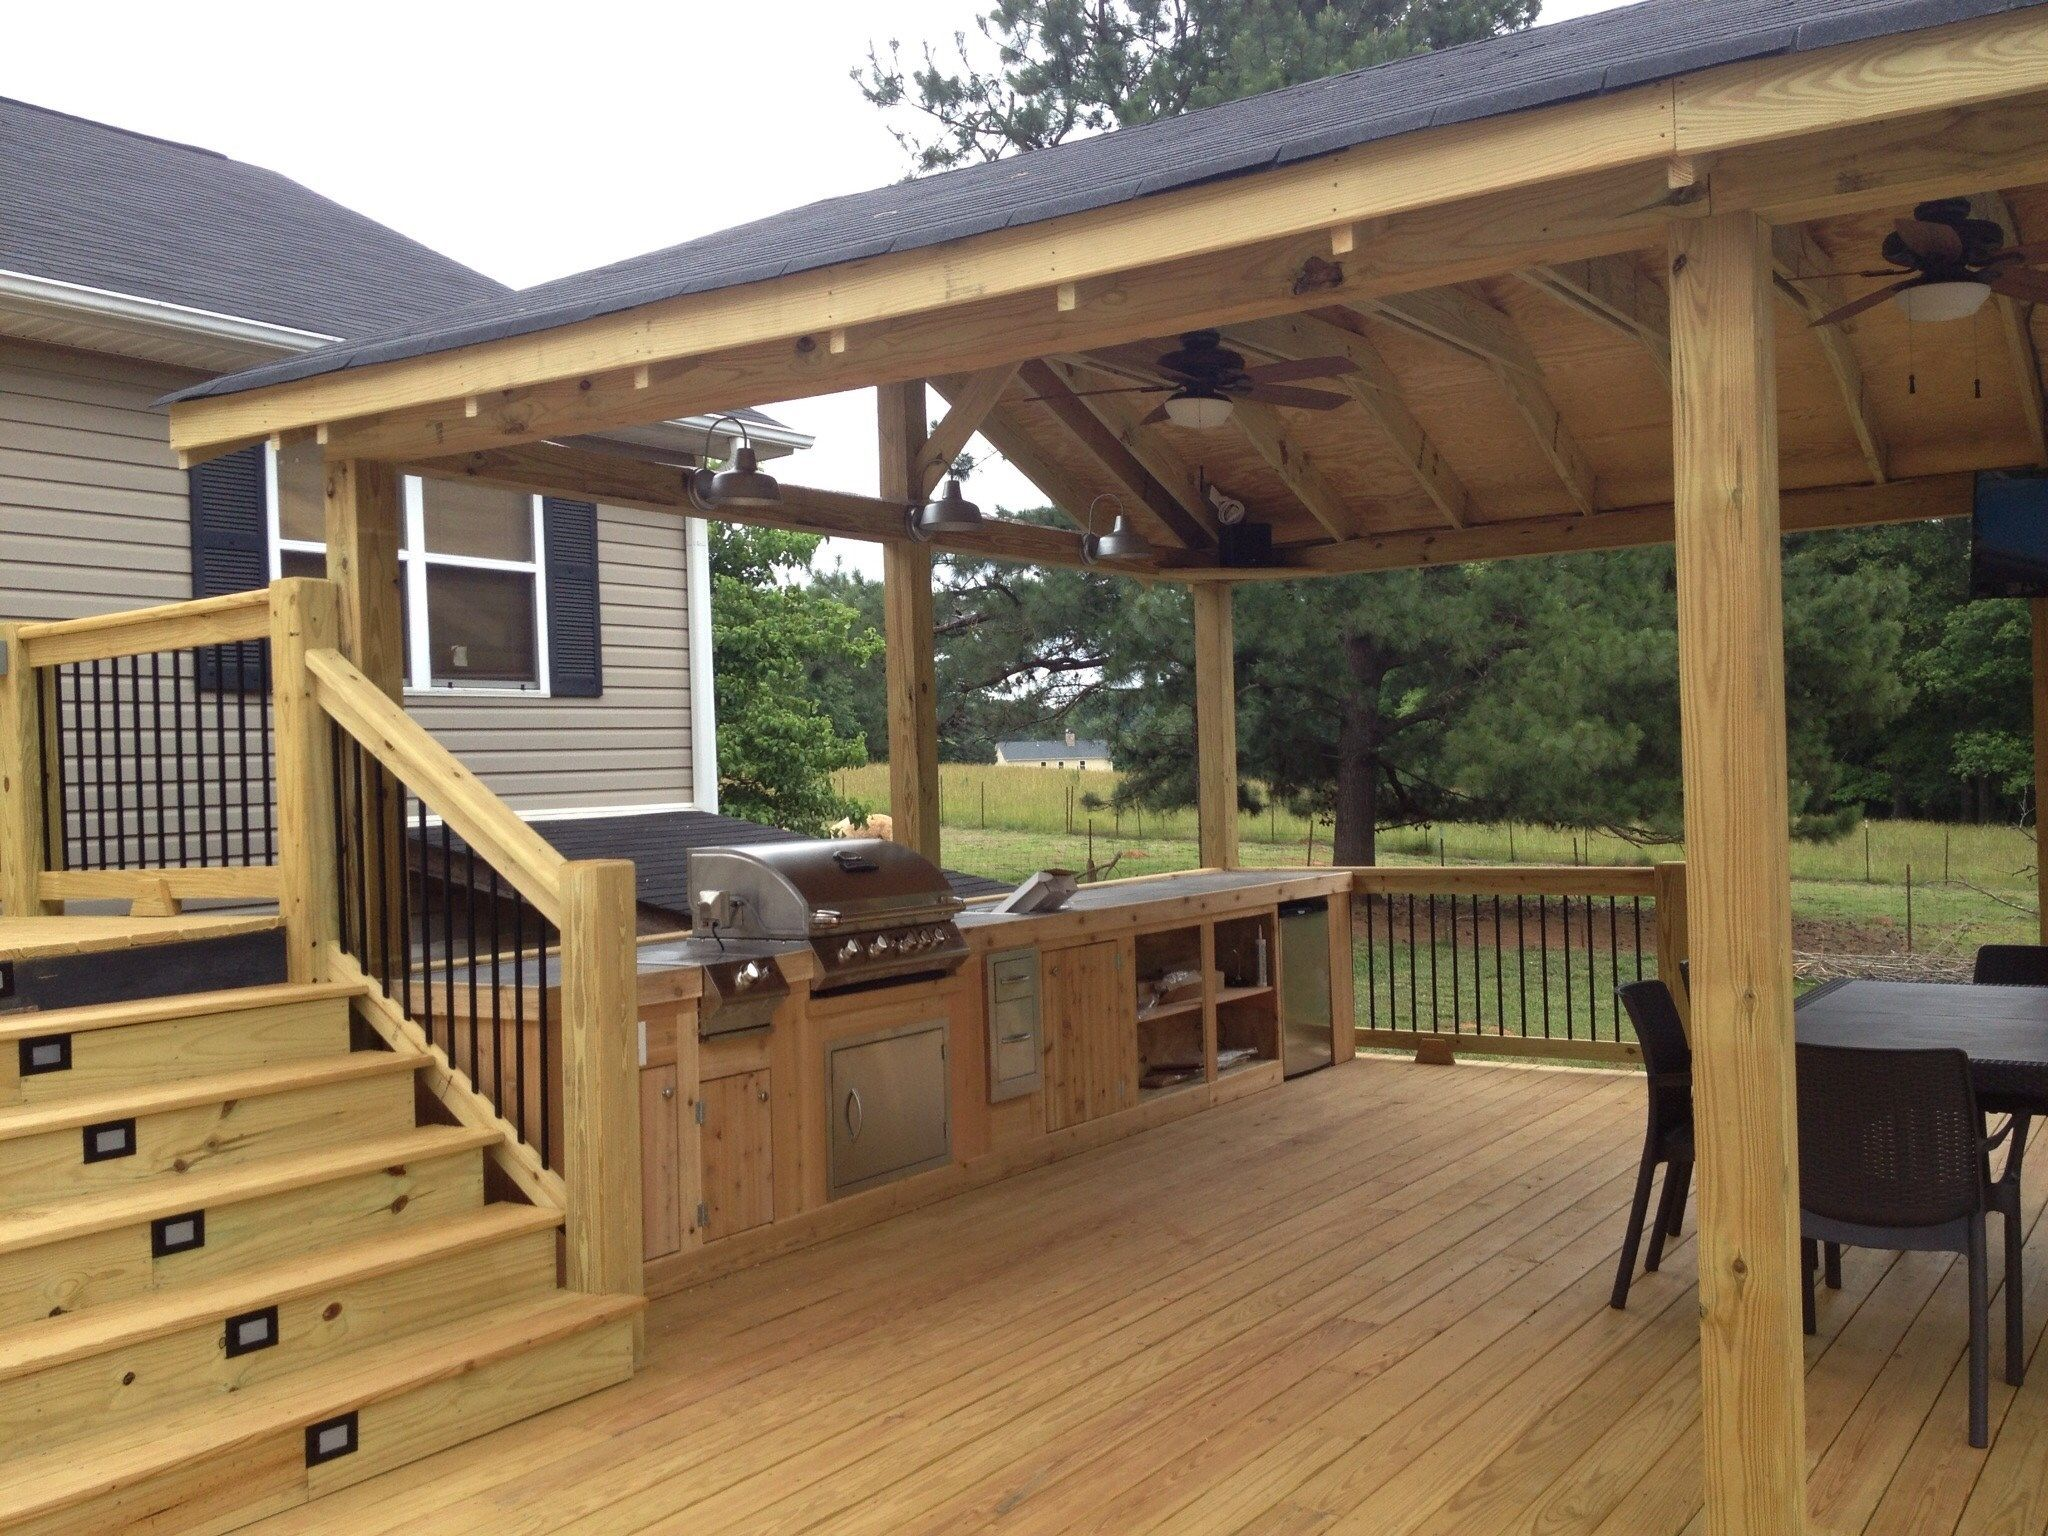 Deck and gazebo - Picture 1196